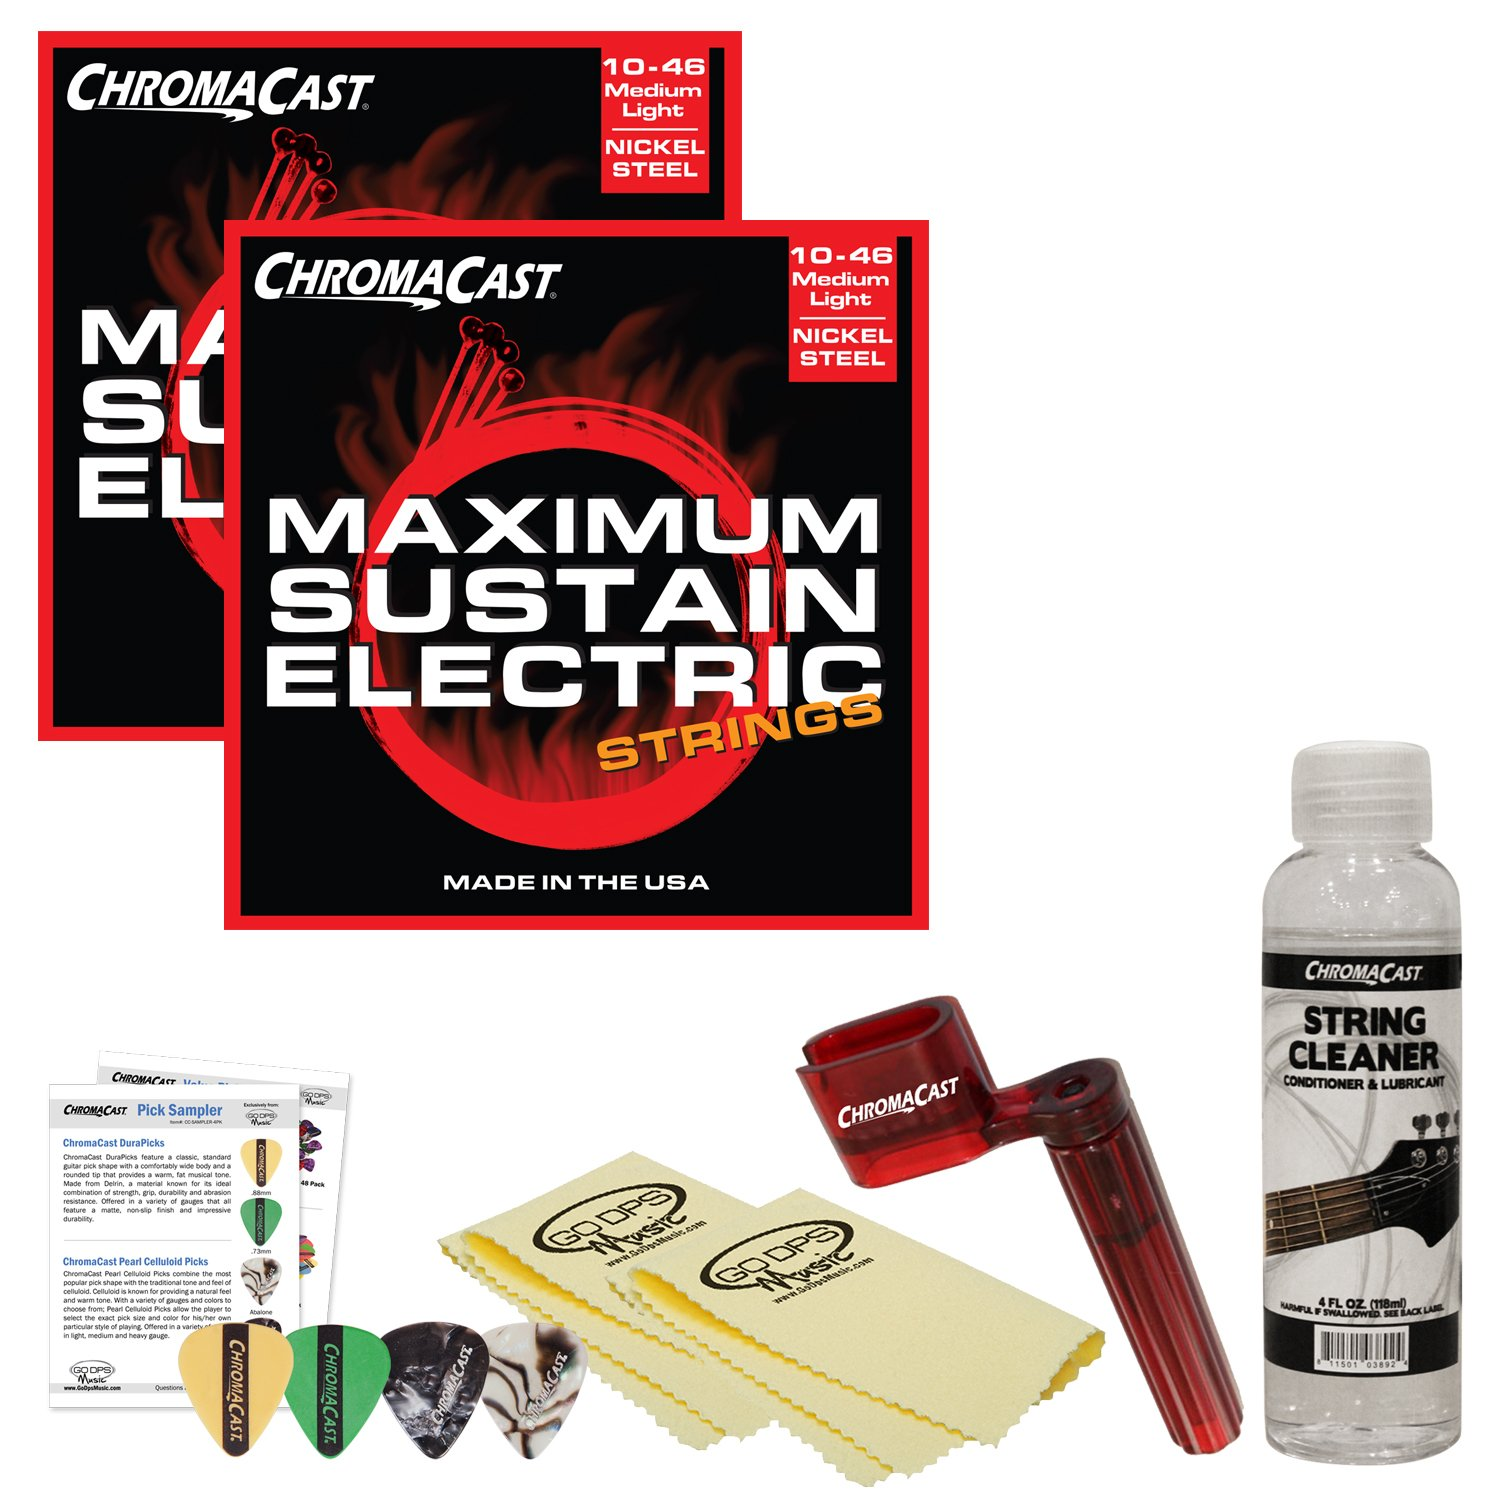 Cheap ChromaCast JB-EGAP-MEDLIGHT Electric Guitar Essential Accessory Bundle with 2 Sets of Max Sustain Med-Light Strings Winder Cleaner and Cloth Black Friday & Cyber Monday 2019